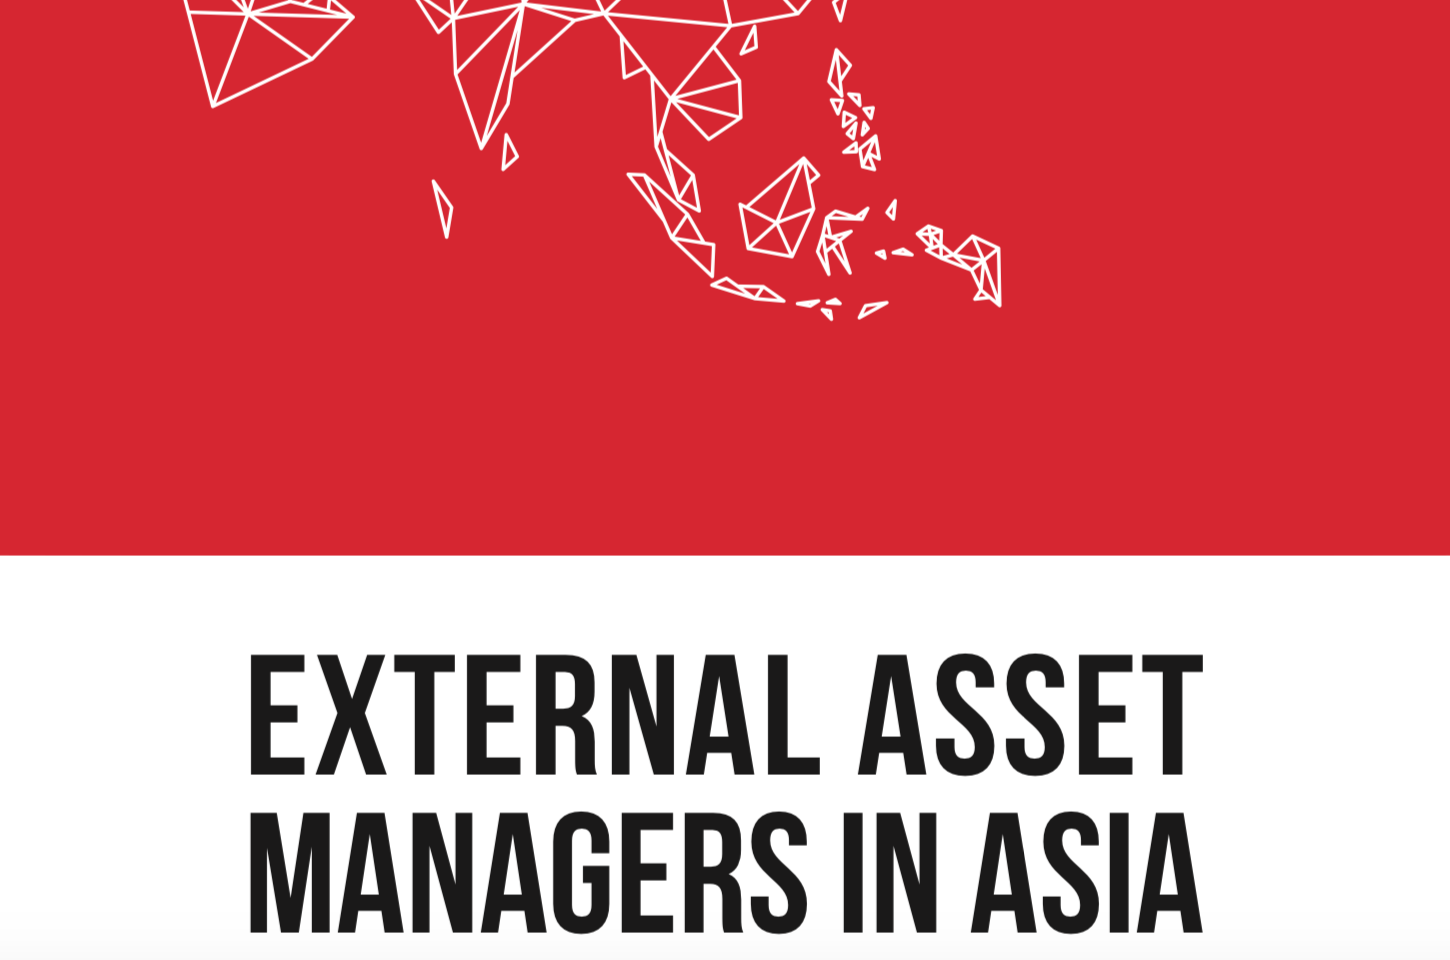 TriLake Partners - Wealth Managers - Singapore - news